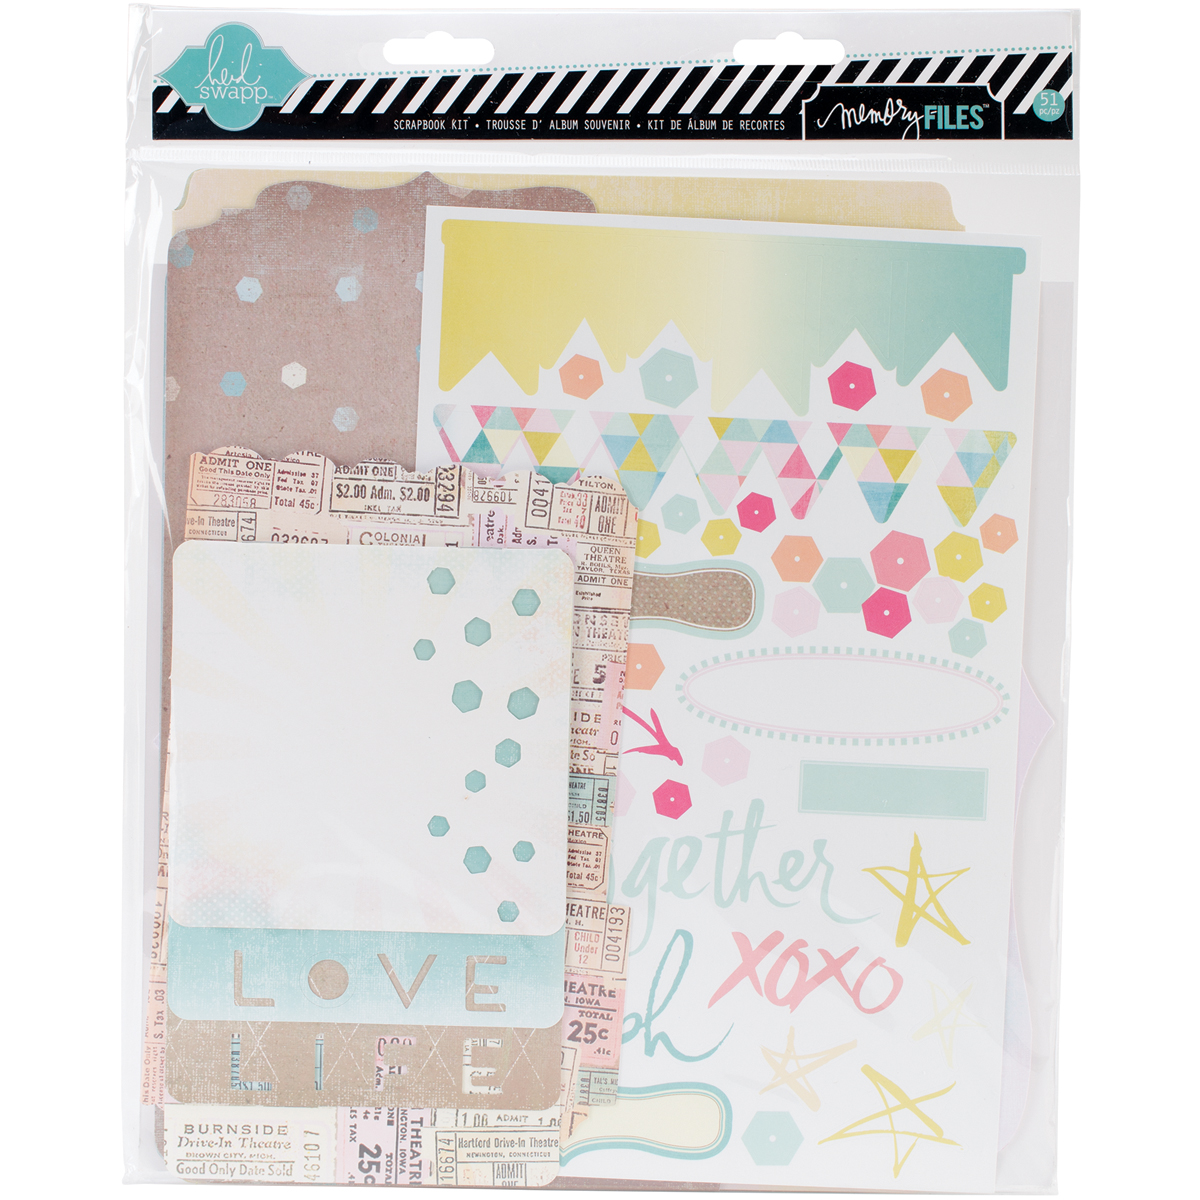 Dreamy Memory Files Kit, Fotostack Booklet, 4 Files and Stickers